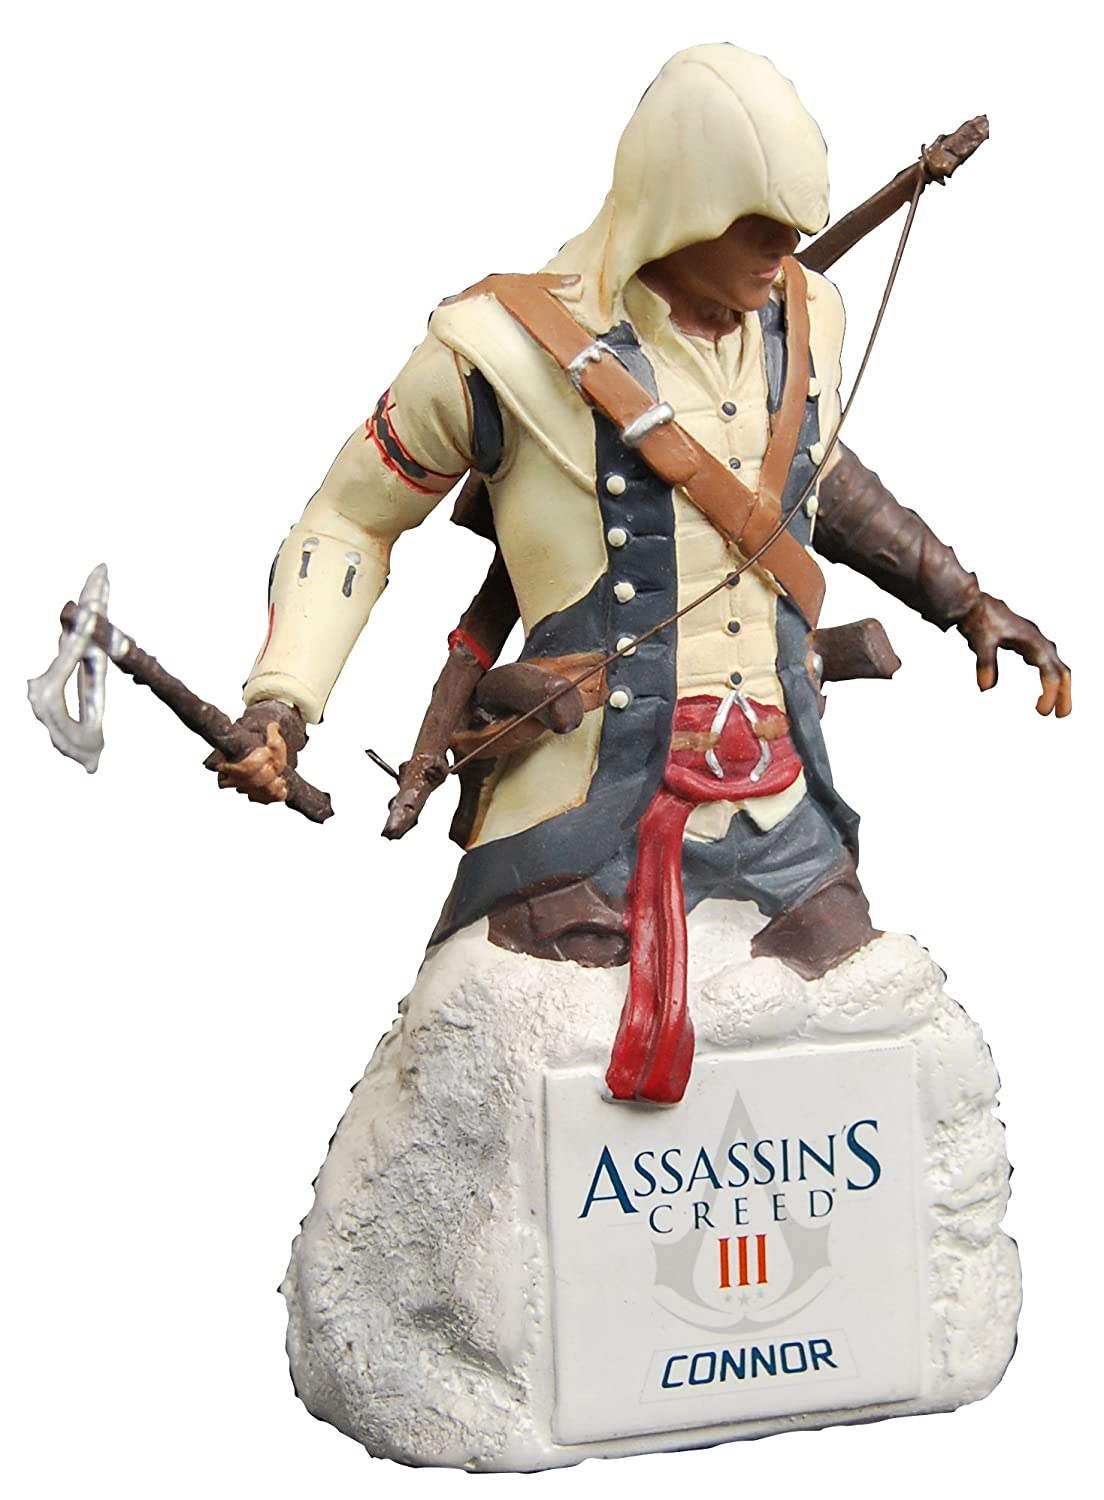 Assassin's Creed III Connor 5 Inch Collectible Bust Resin Statue ID Toys (Montreal) Ubisoft IDUBI2208